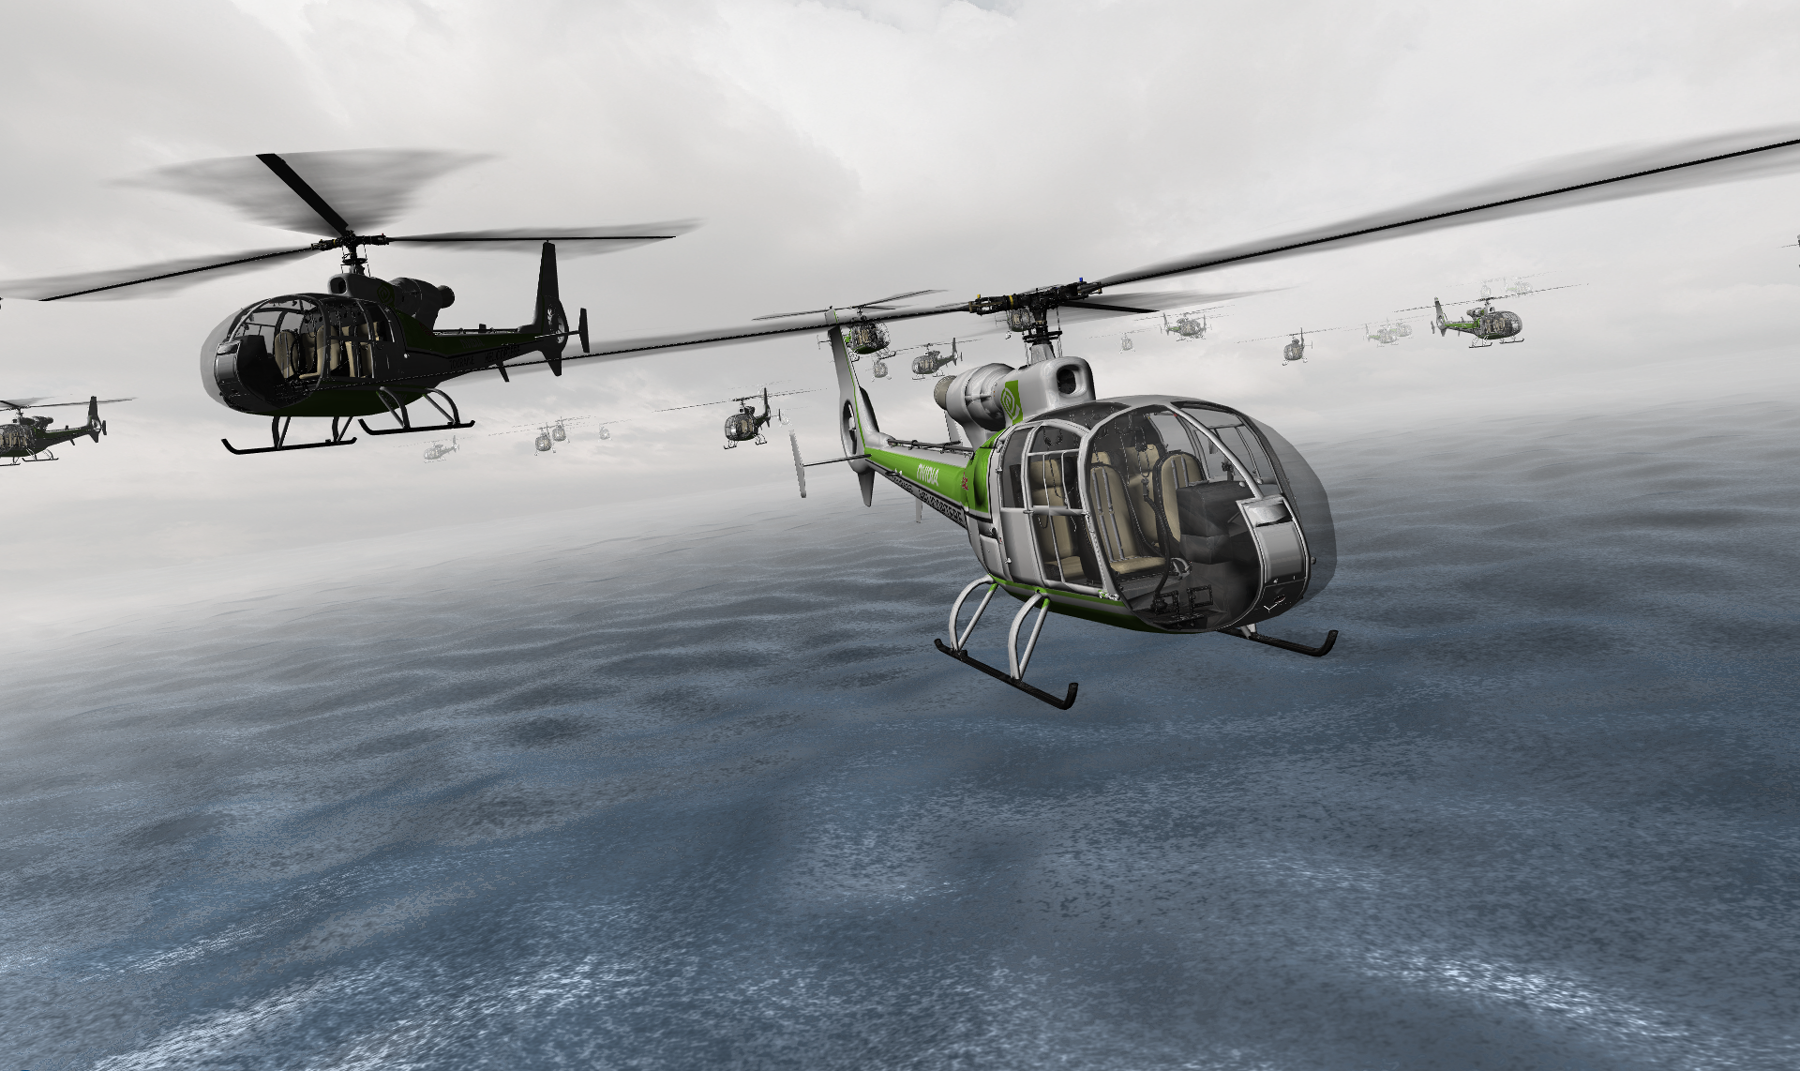 Sample screenshot: Helicopters fly through the sky above an ocean.